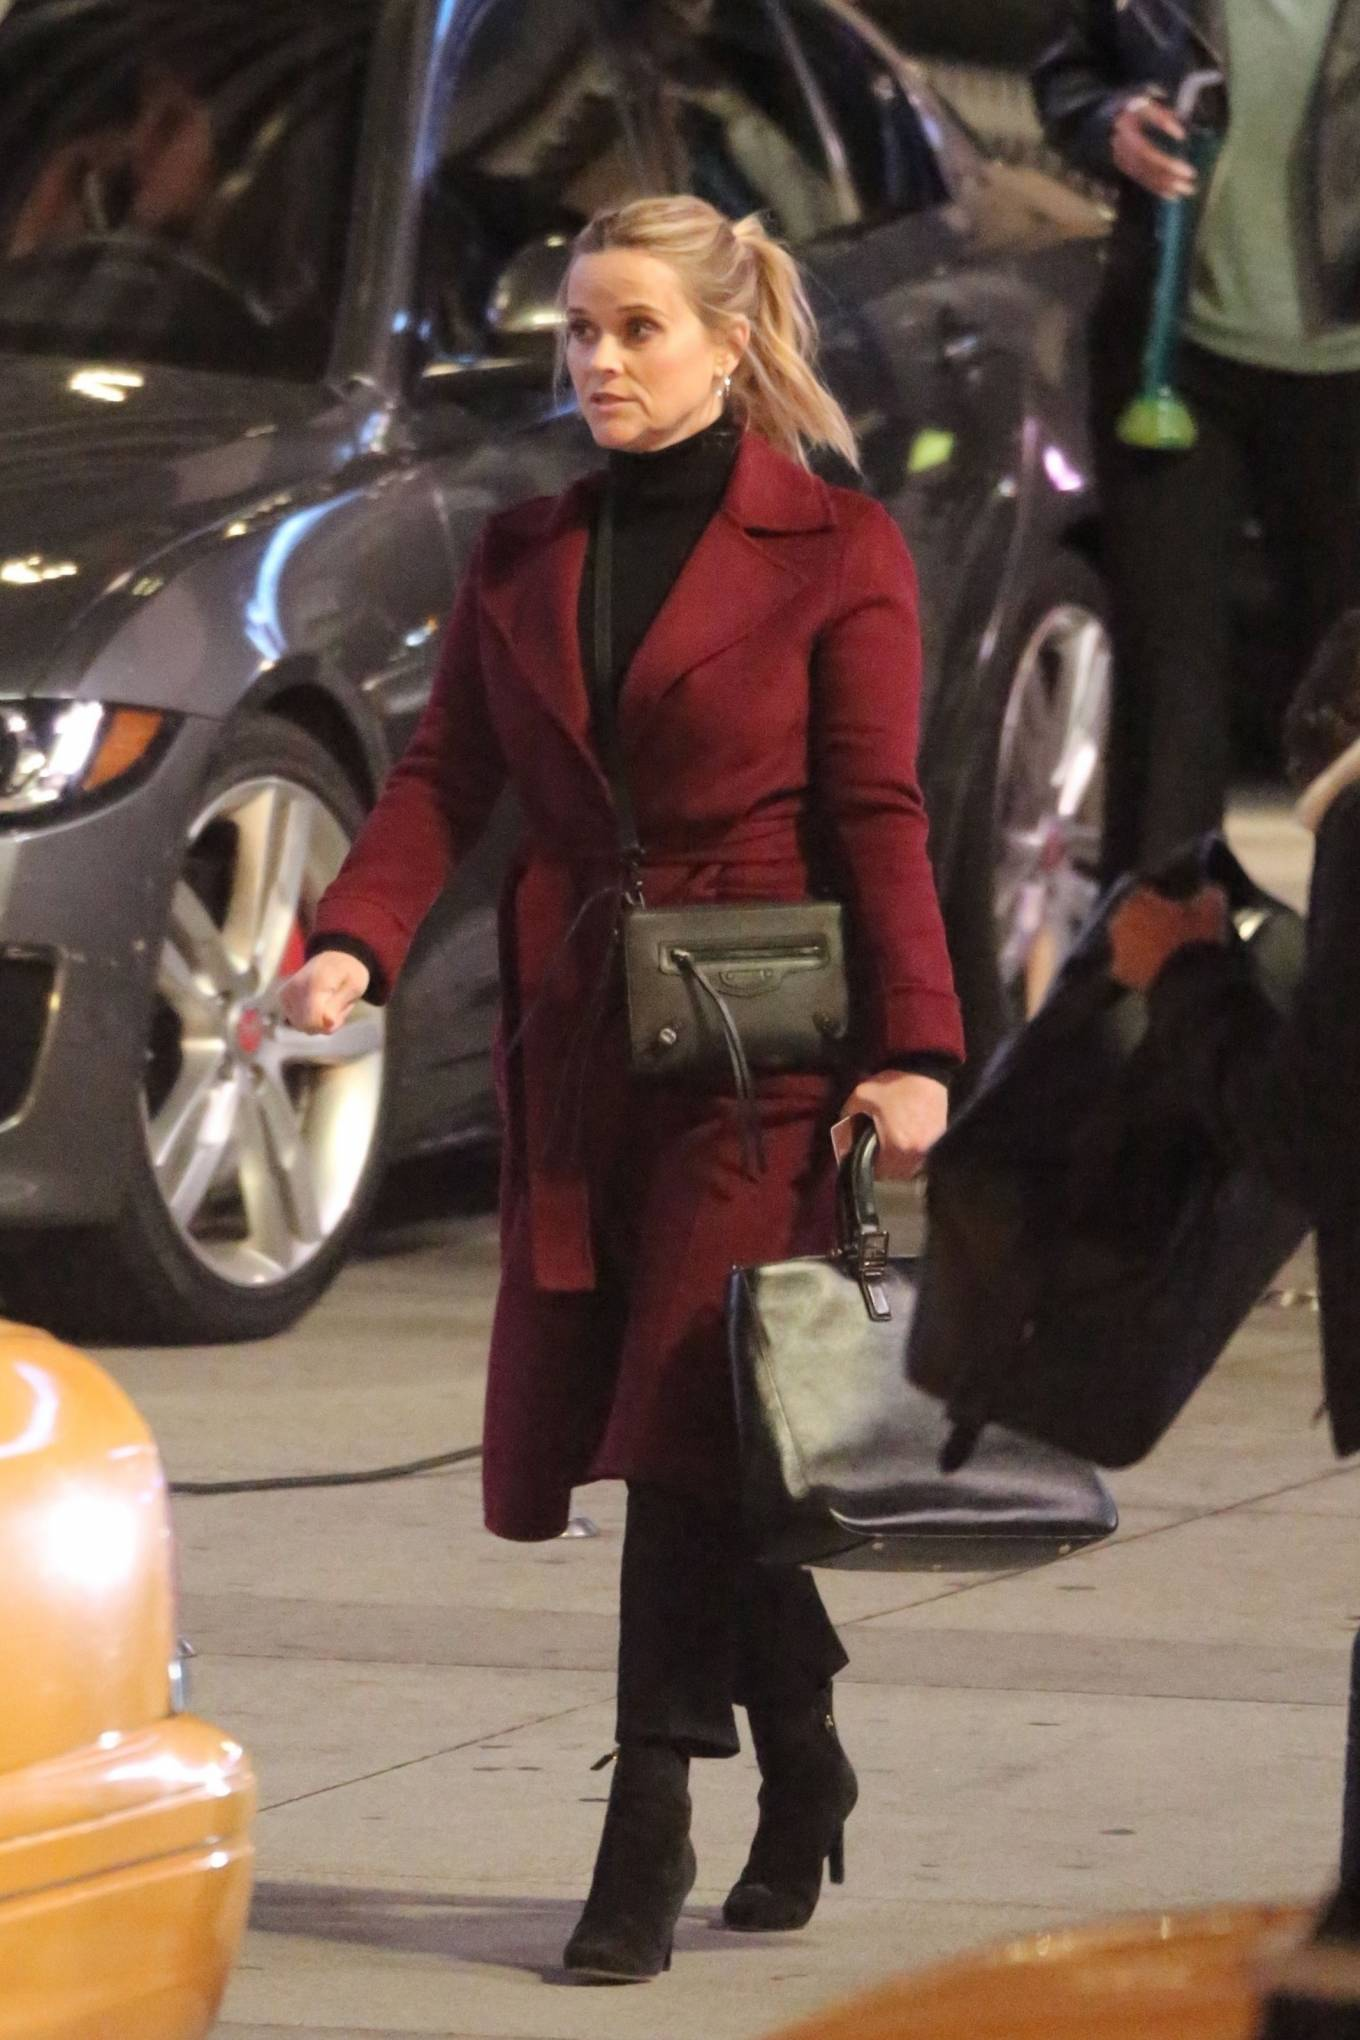 Reese Witherspoon - 'The Morning Show' set in Los Angeles